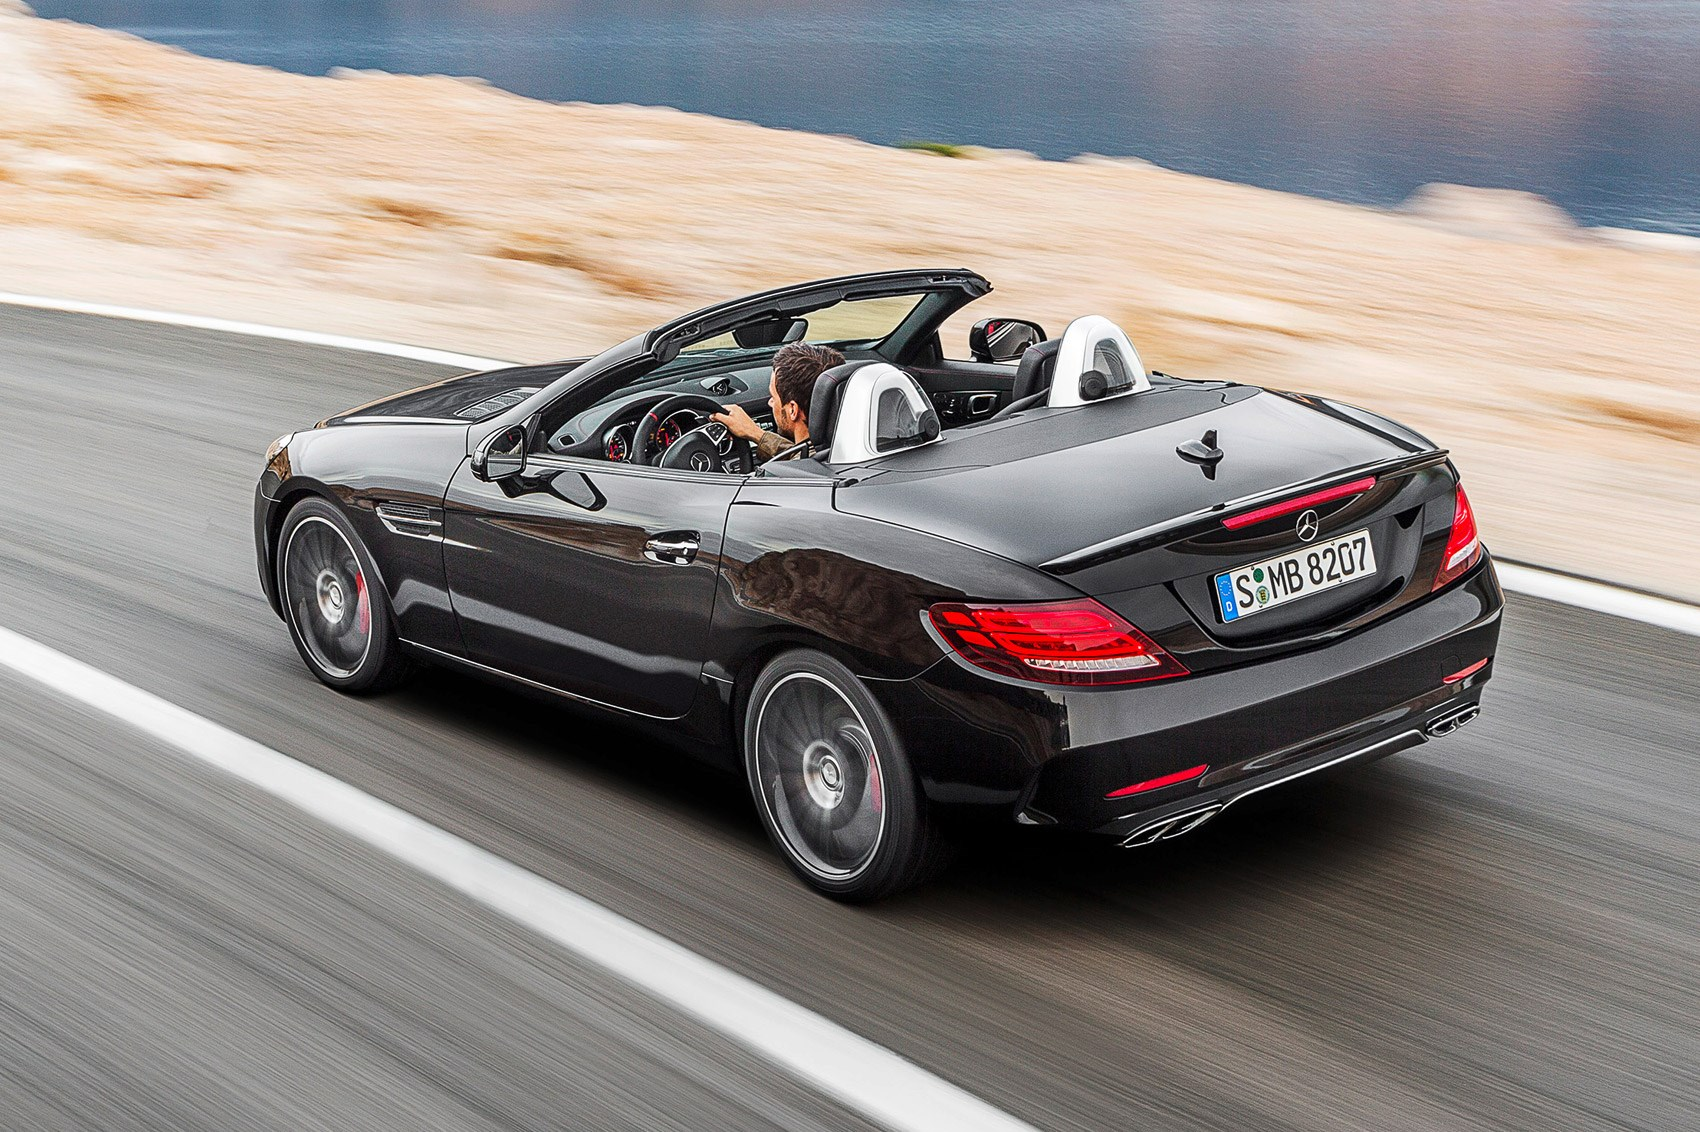 Thinking outside the boxster mercedes amg slc 43 review for Mercedes benz amg slc 43